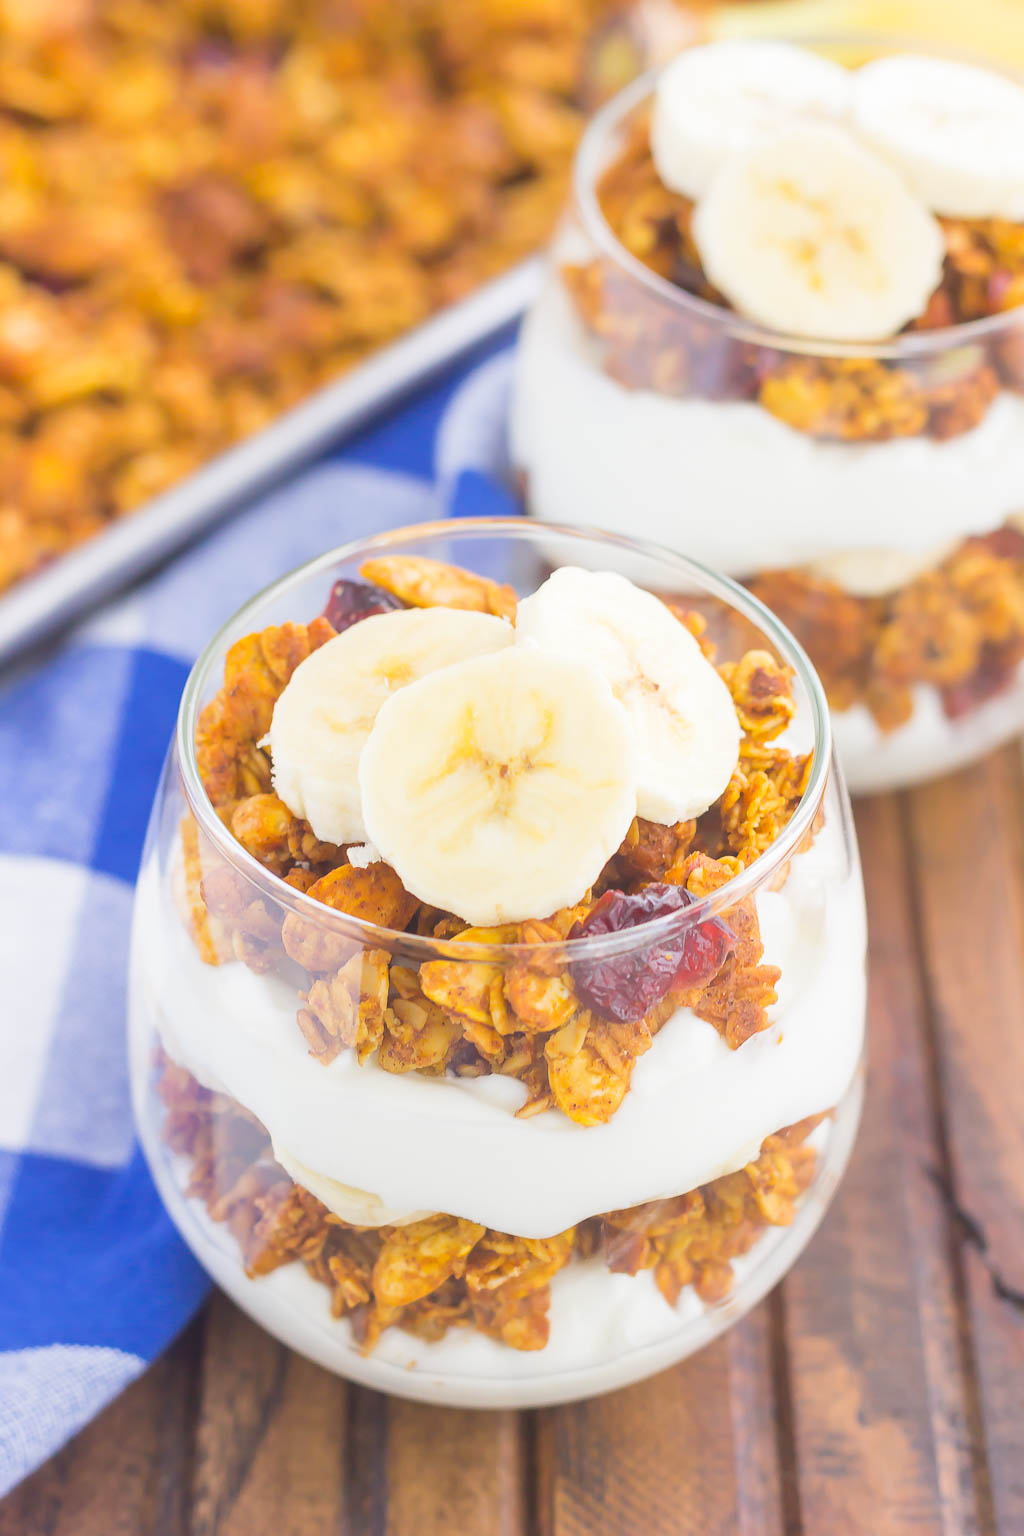 Pumpkin Banana Yogurt Parfait makes a deliciously simple breakfast or snack. Packed with vanilla yogurt, pumpkin spice granola and fresh banana slices, this healthier dish is easy to make and perfect for fall! #parfait #yogurtparfait #pumpkinparfait #pumpkinyogurt #pumpkinbreakfast #pumpkinsnack #breakfast #snack #healthybreakfast